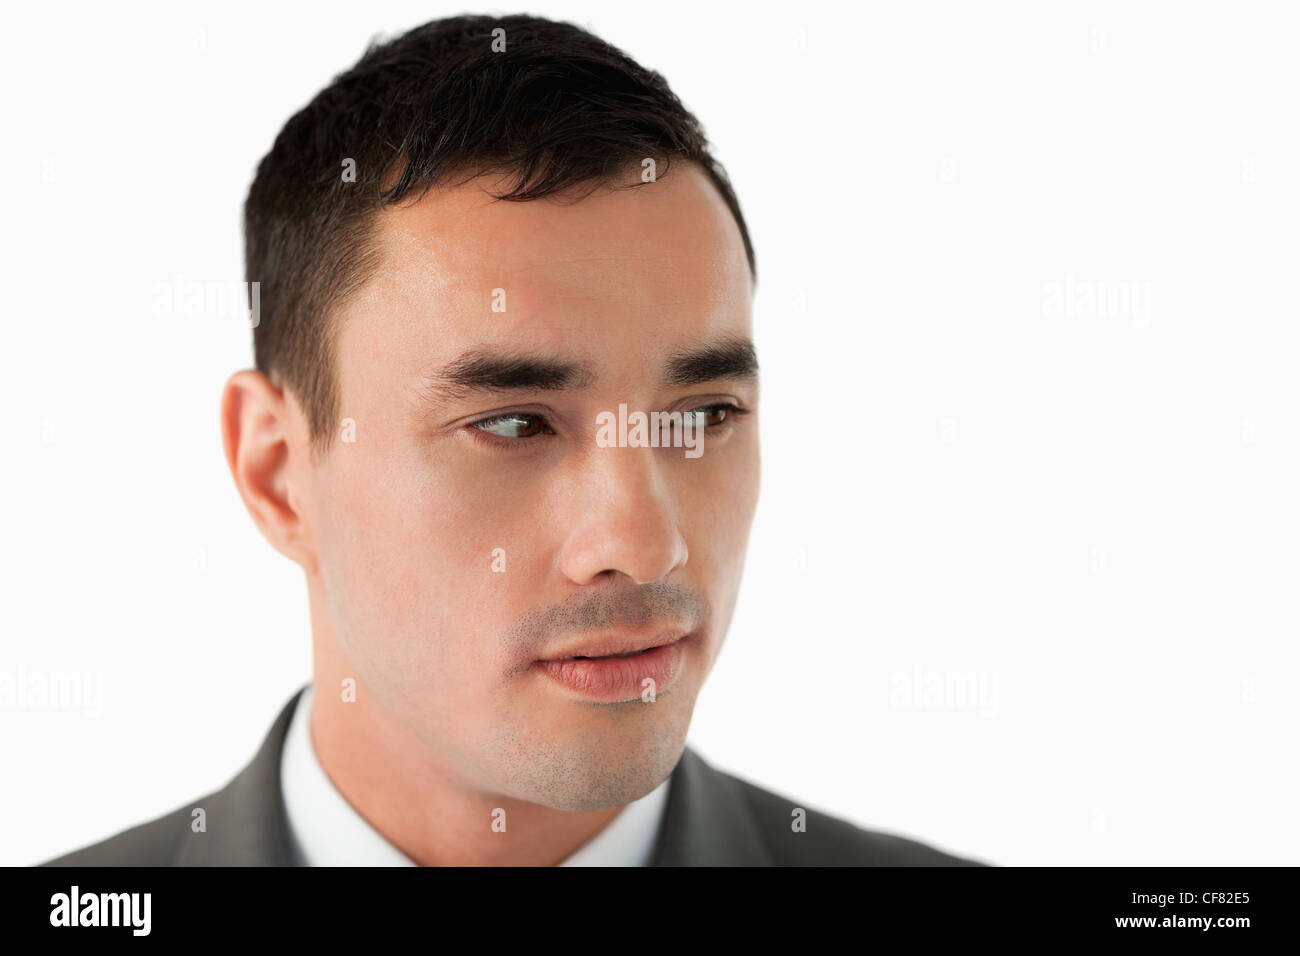 Close up of businessman looking to his left - Stock Image